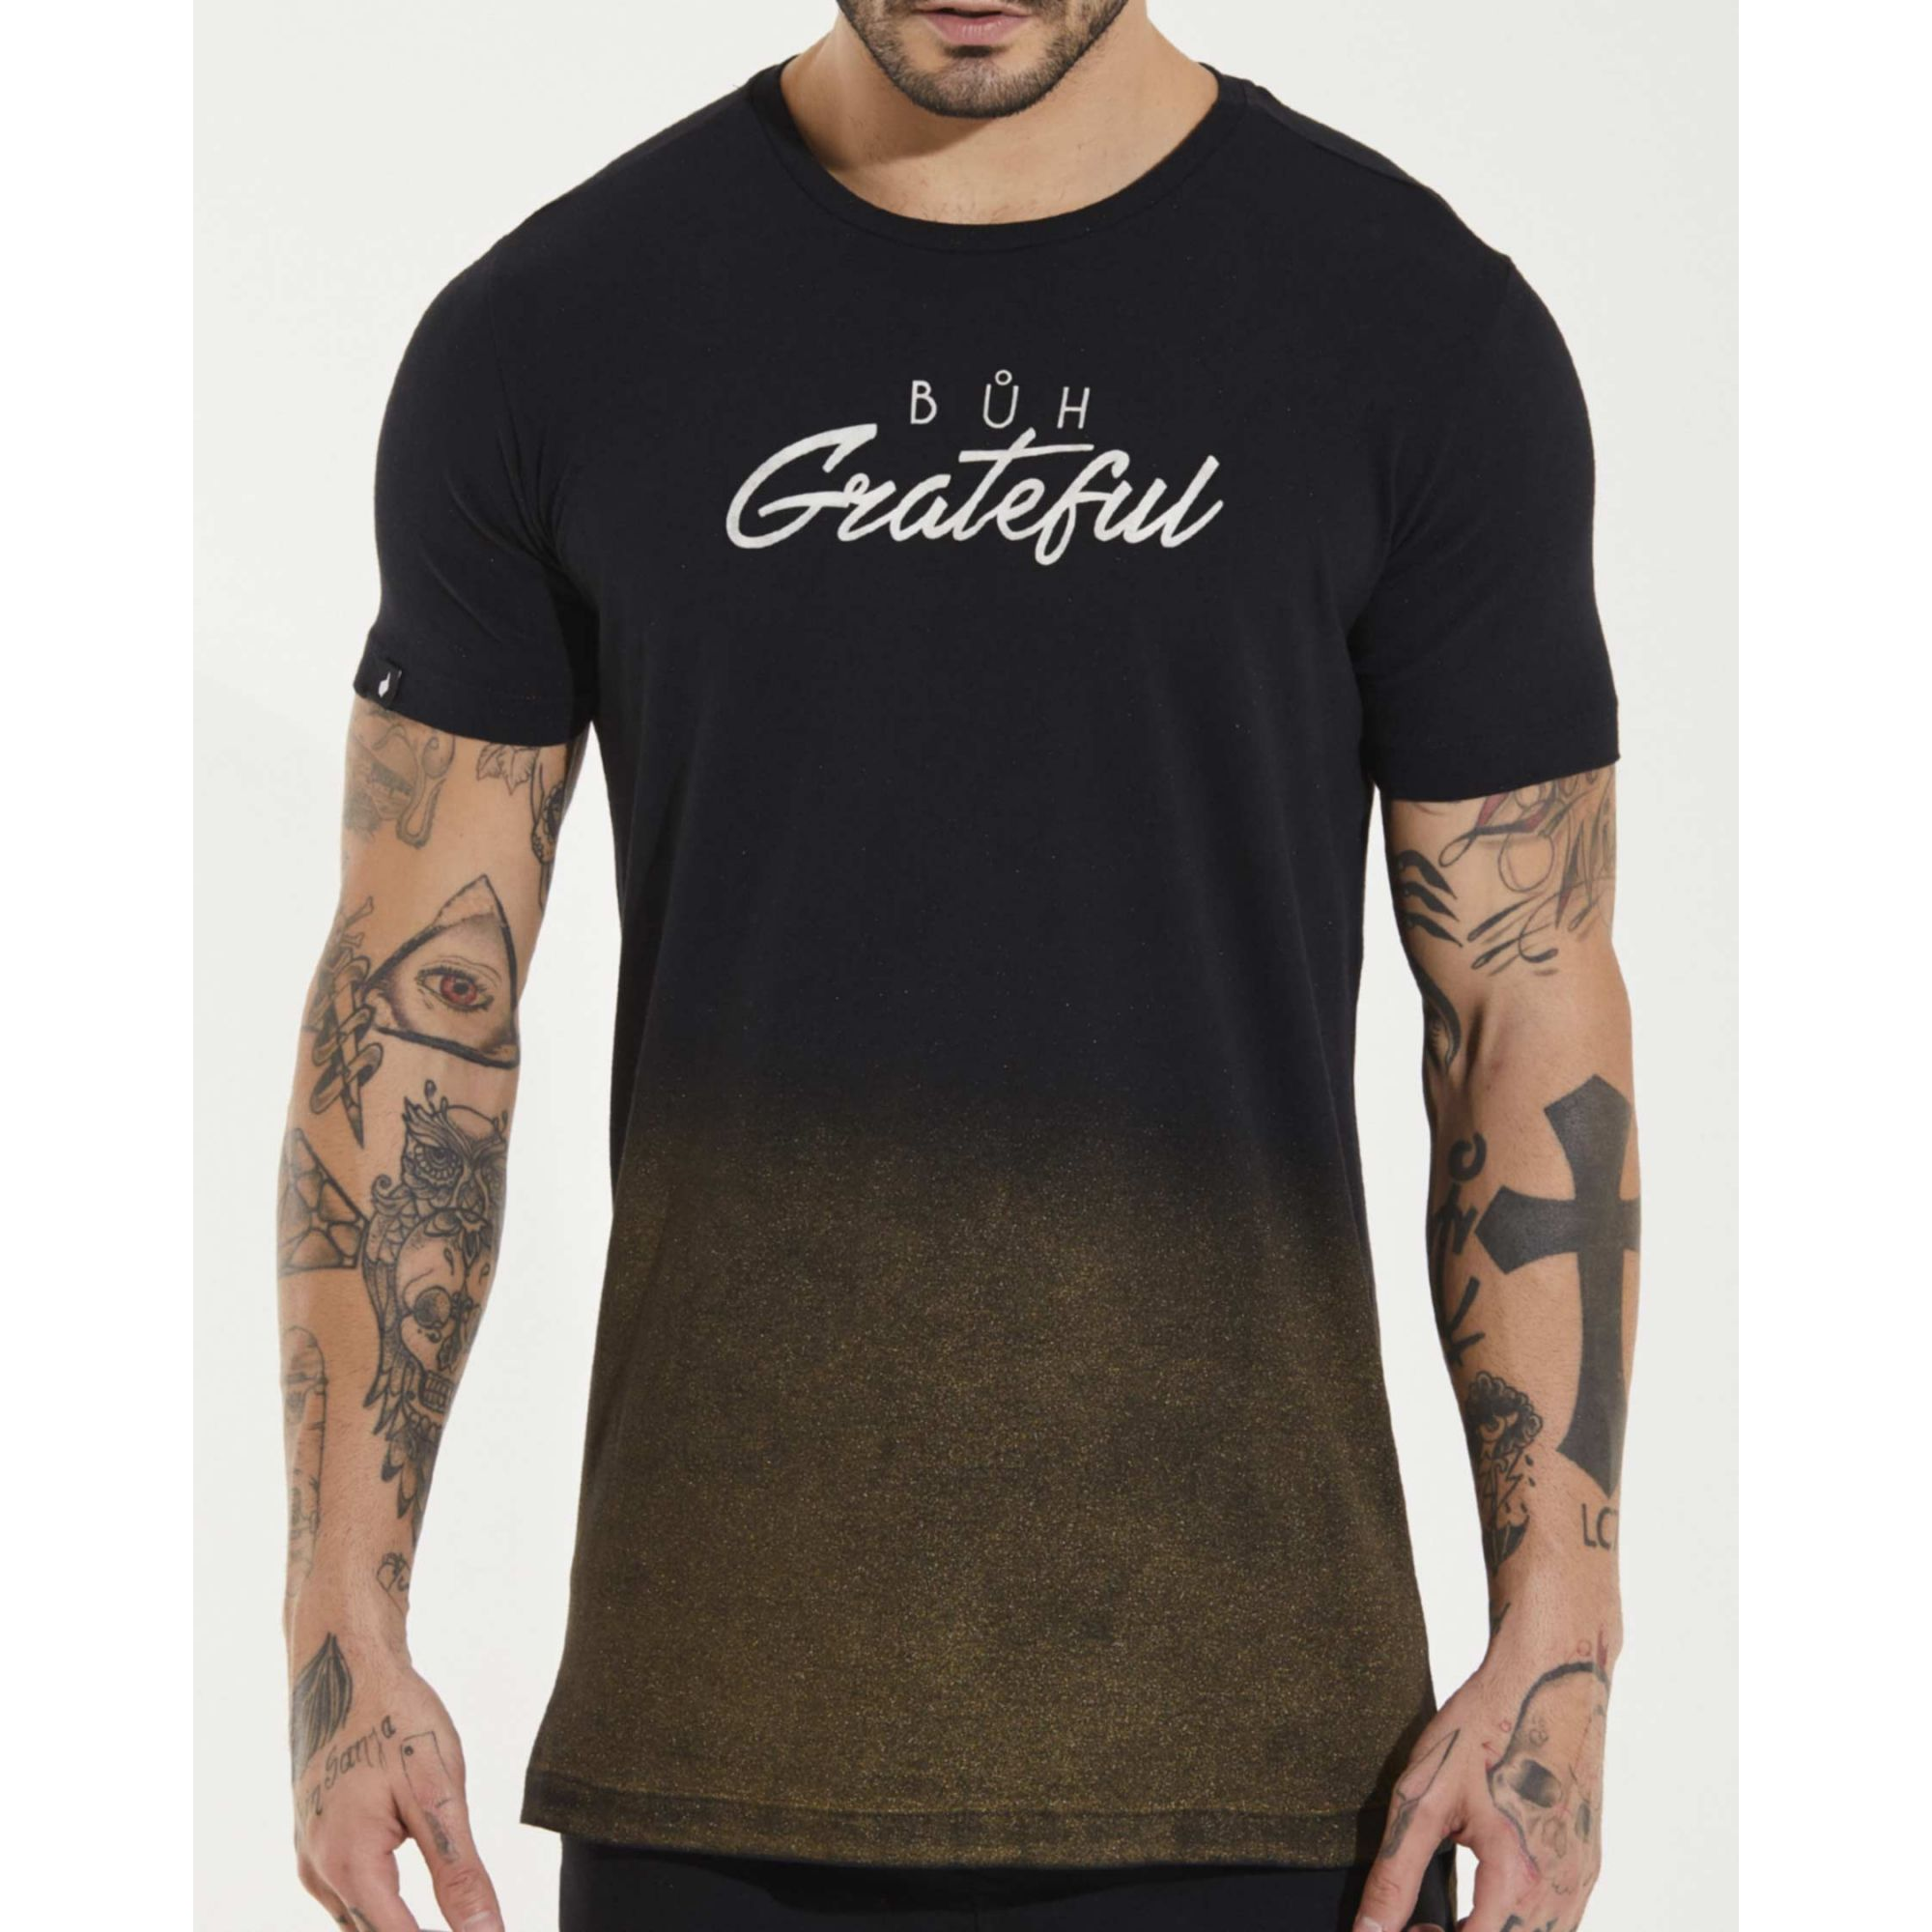 Camiseta Buh Grateful Black